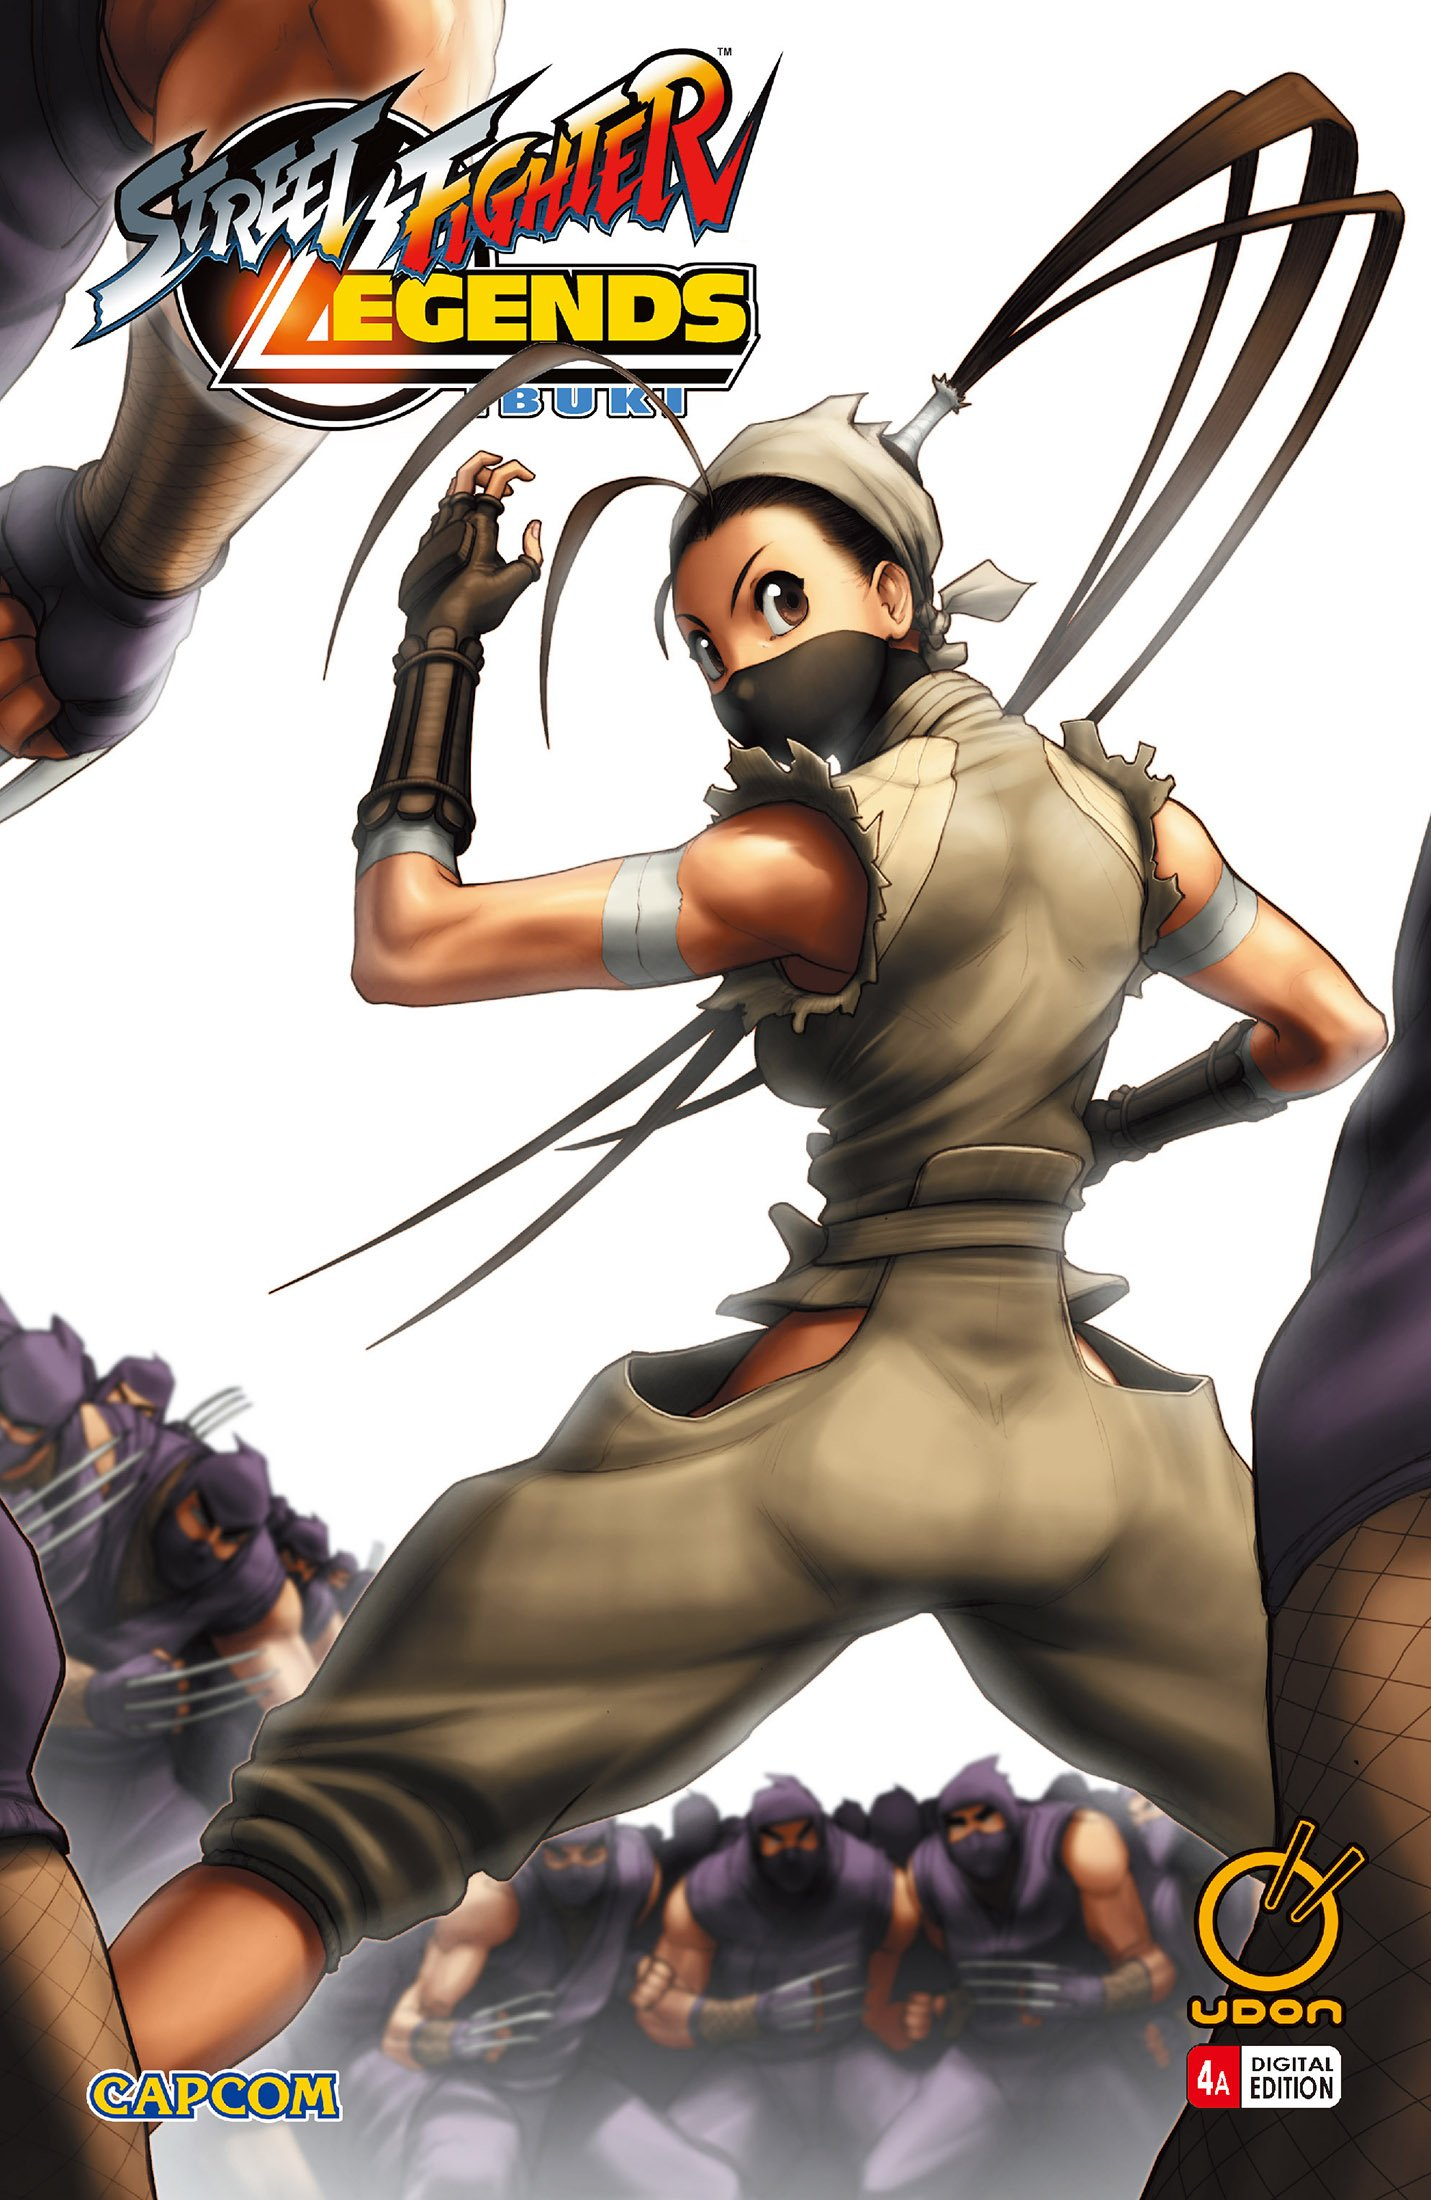 Street Fighter Legends: Ibuki 004 (August 2010) (cover a)